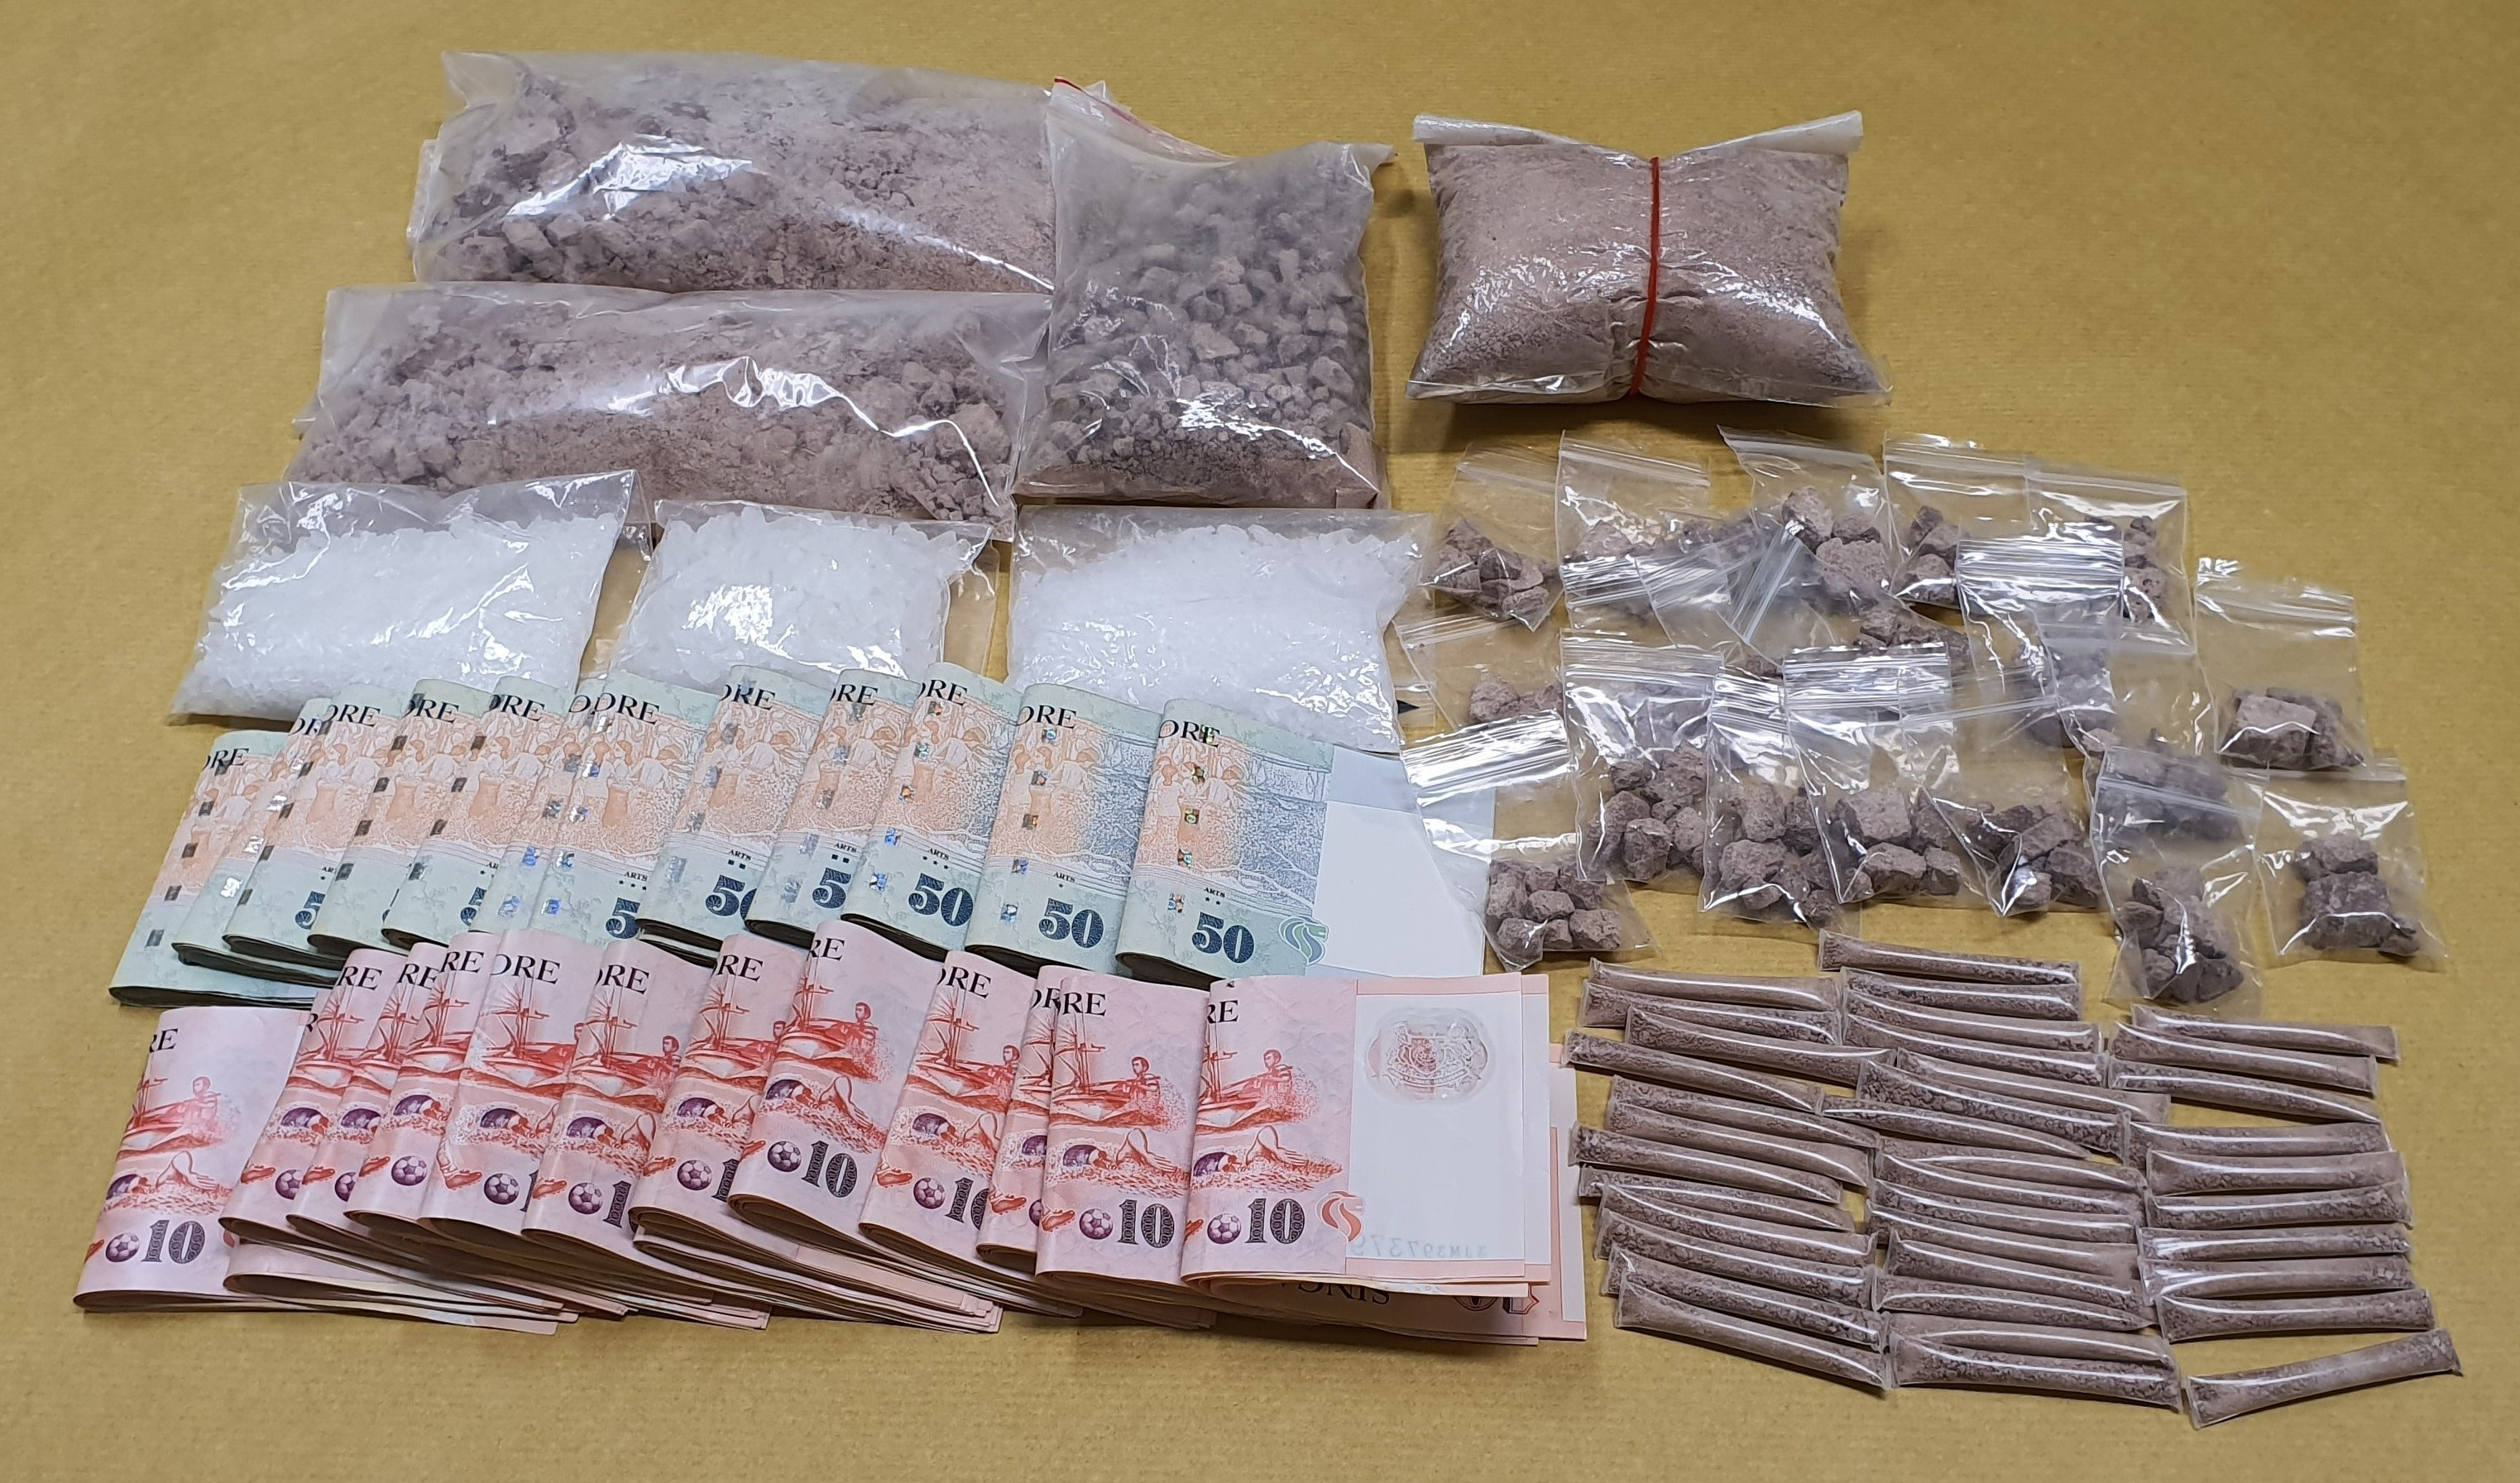 Photo-1 (CNB):  Drugs and cash seized from 54-year-old suspected drug trafficker and from within his residential unit, during CNB island-wide operation from 23 to morning of 27 September 2019.